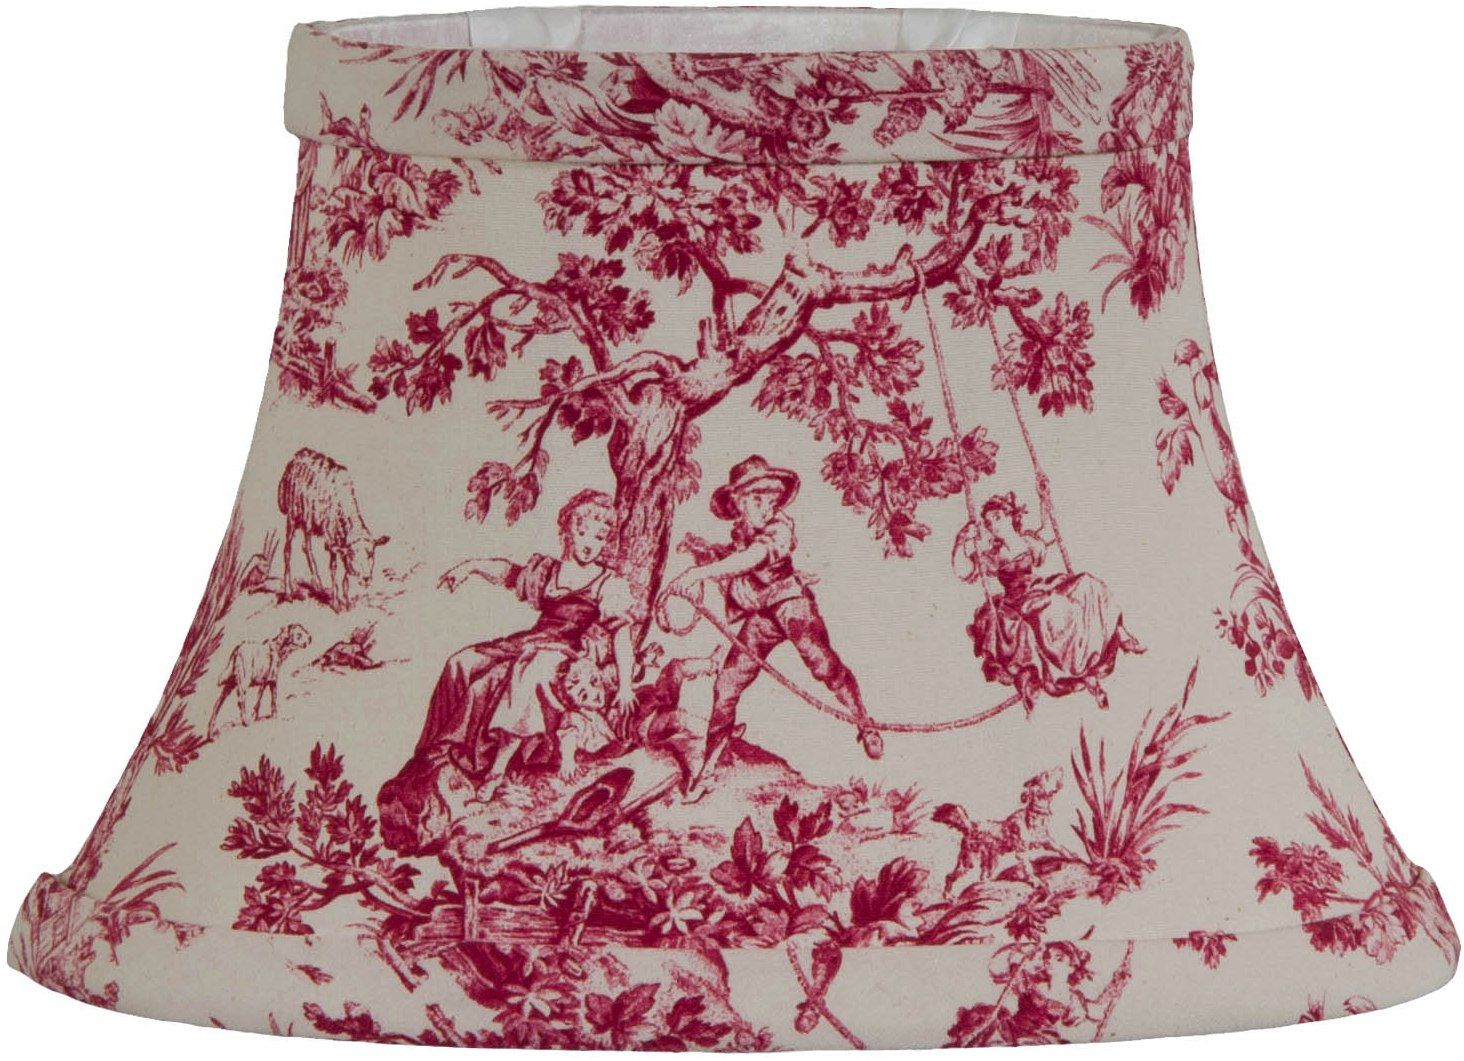 Oval Red Toile Lamp Shade Toile Lamp Shades Antique Lamps